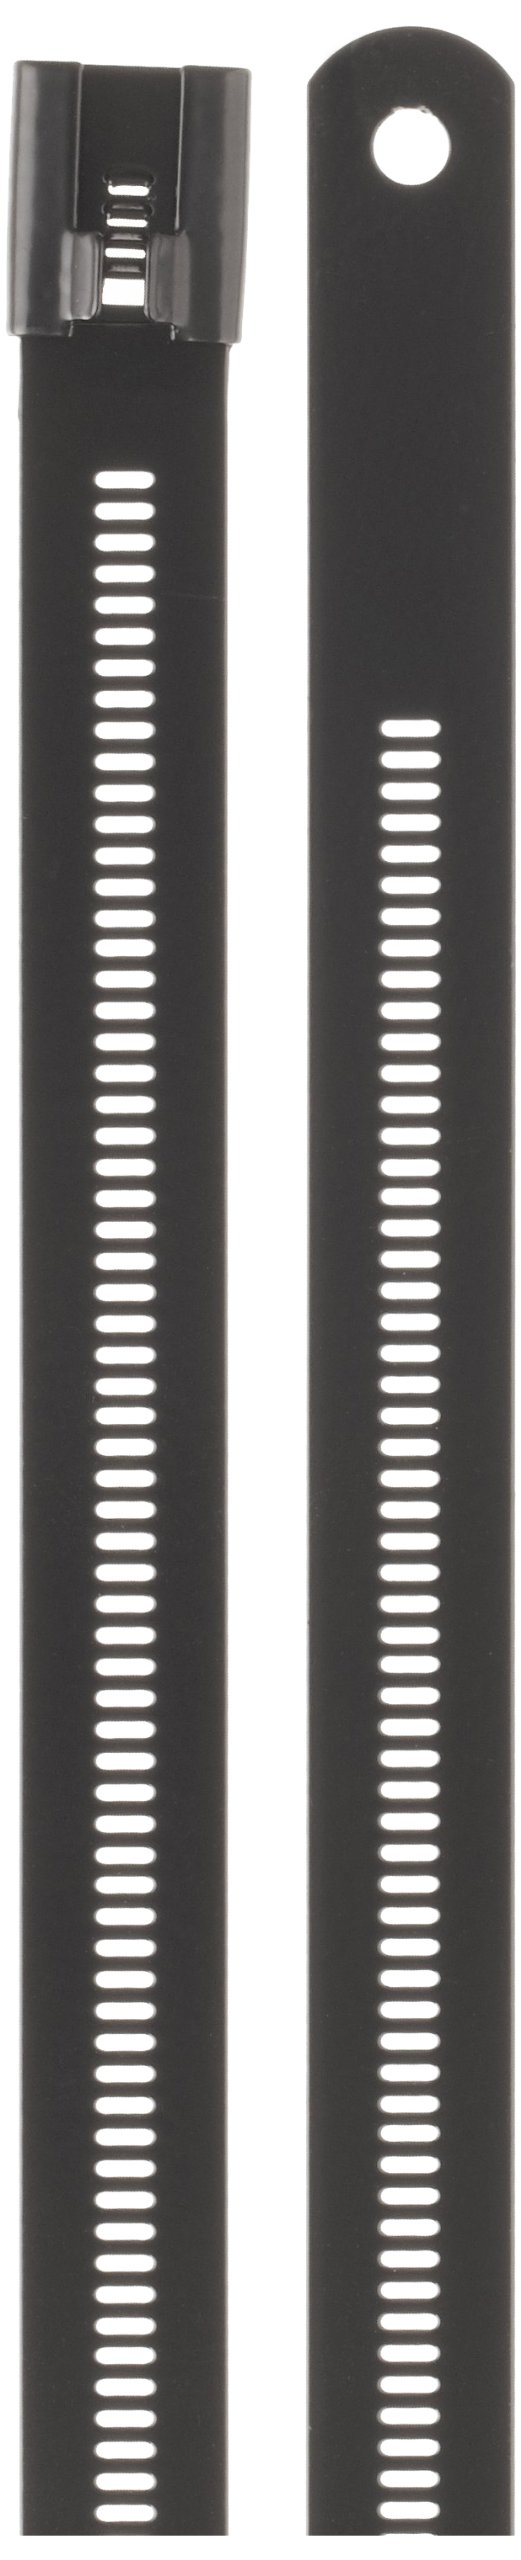 BAND-IT AE7139 316 Stainless Steel Multi Lok Cable Tie, 0.47'' Width, 12'' Length, 3.2'' Maximum Diameter, Bag of 100 by Band-It